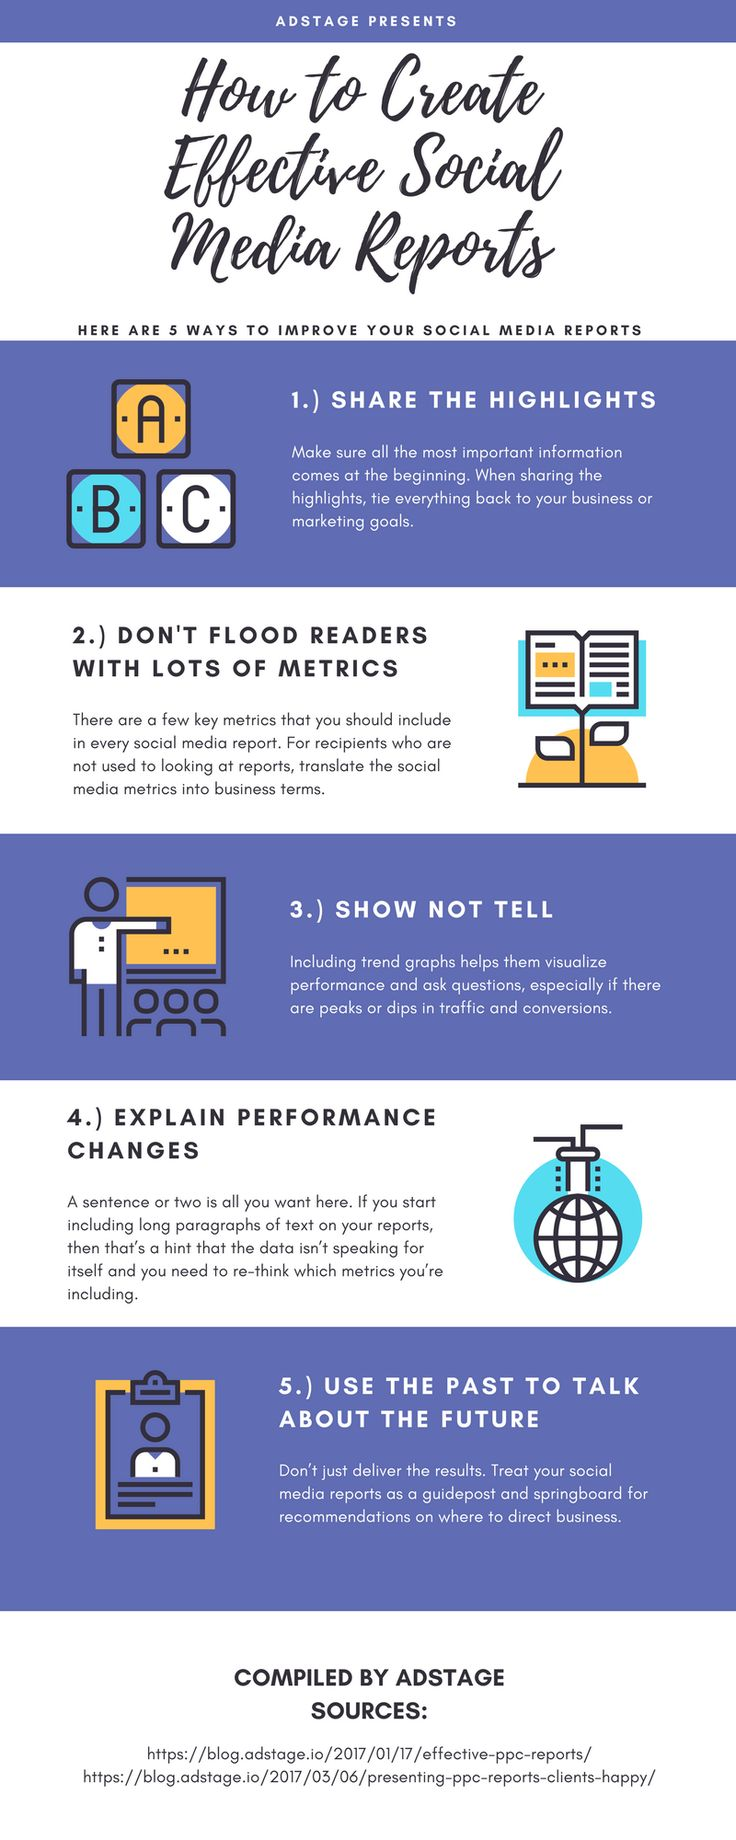 How to Create Effective Social Media Reports [Infographic] - with the increasing use of social media in content and digital marketing, compile and present your data cleanly with these tips!